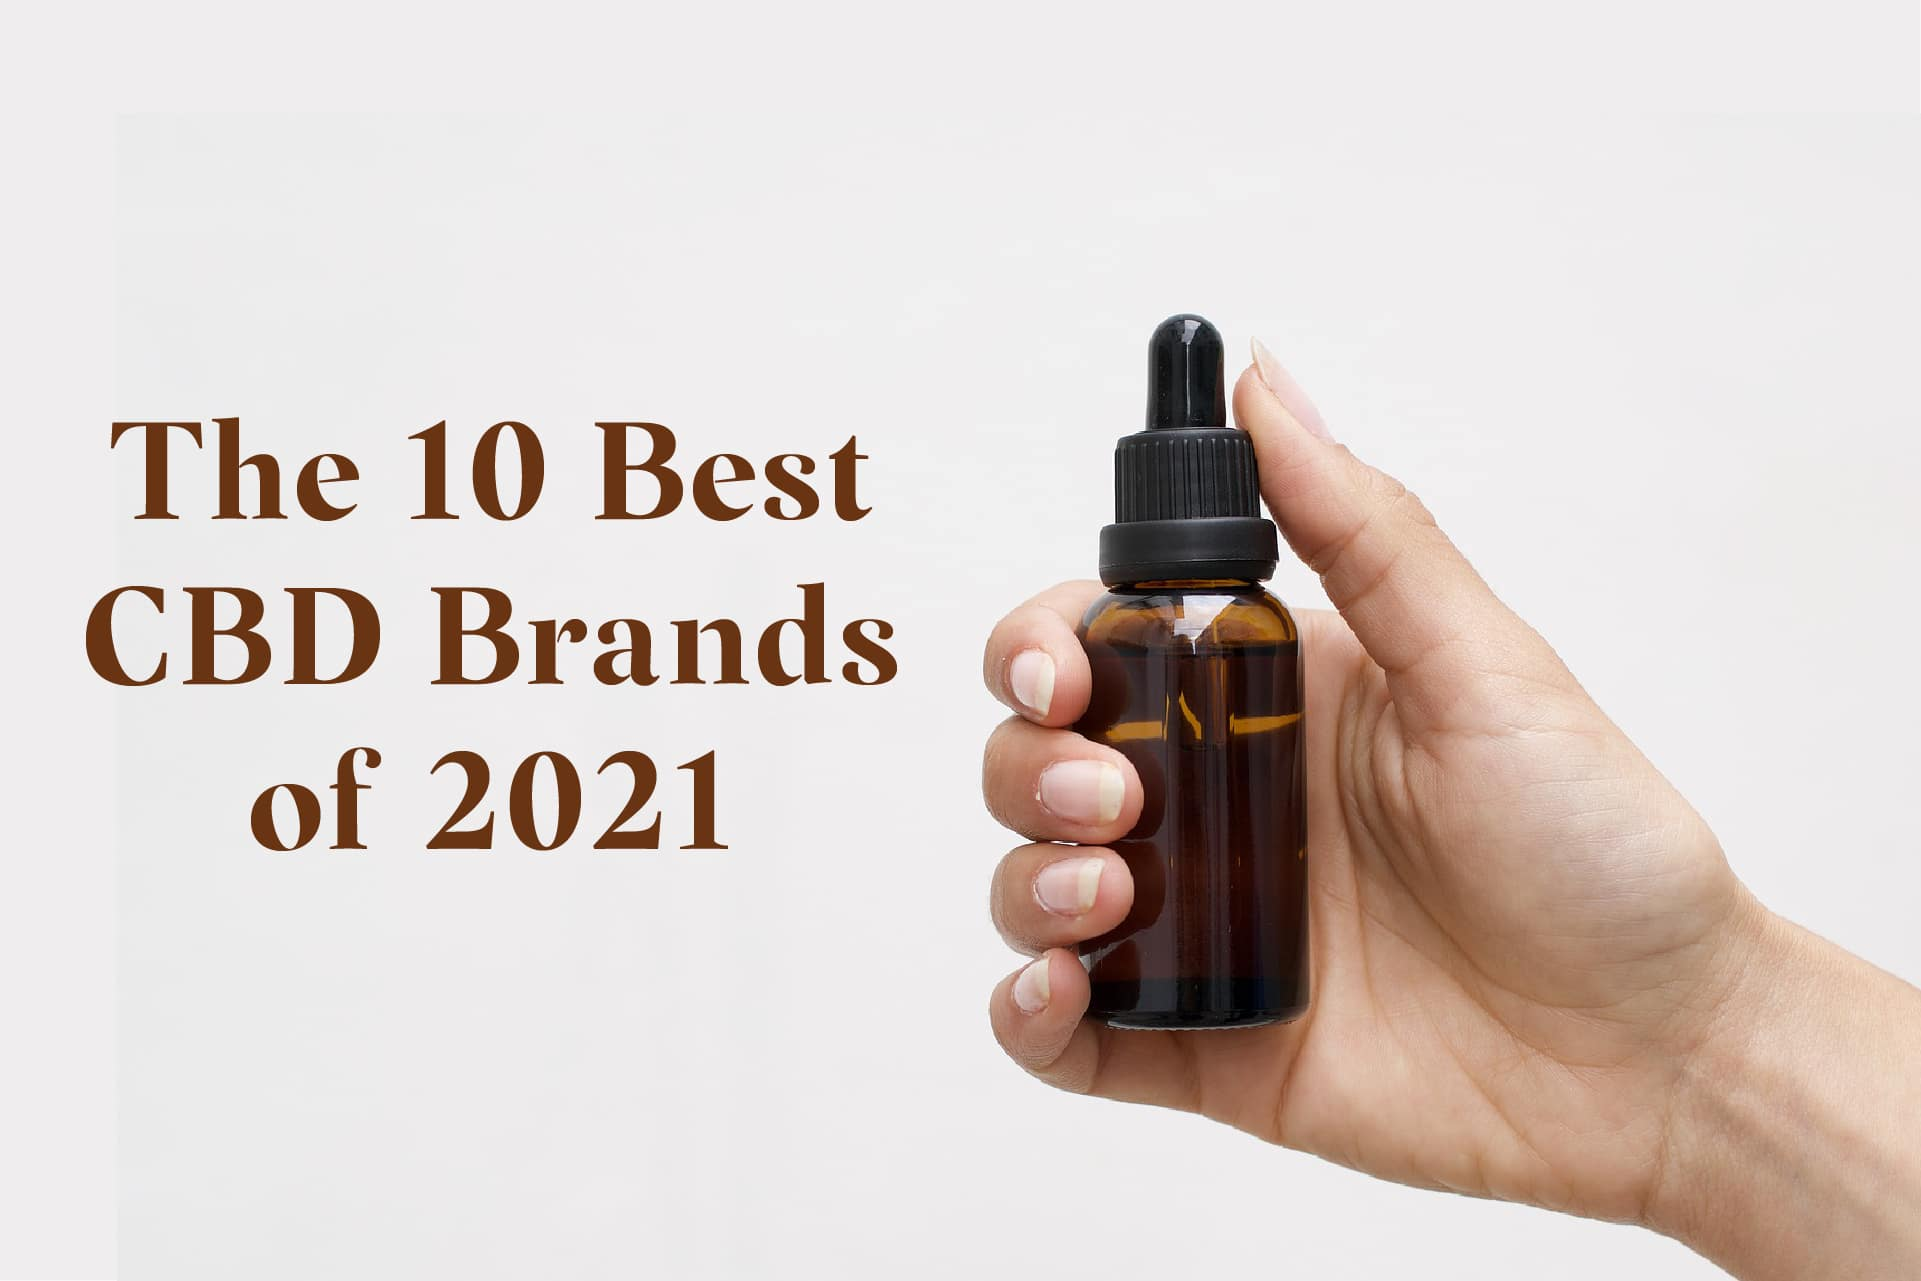 The 10 Best CBD Brands of 2021